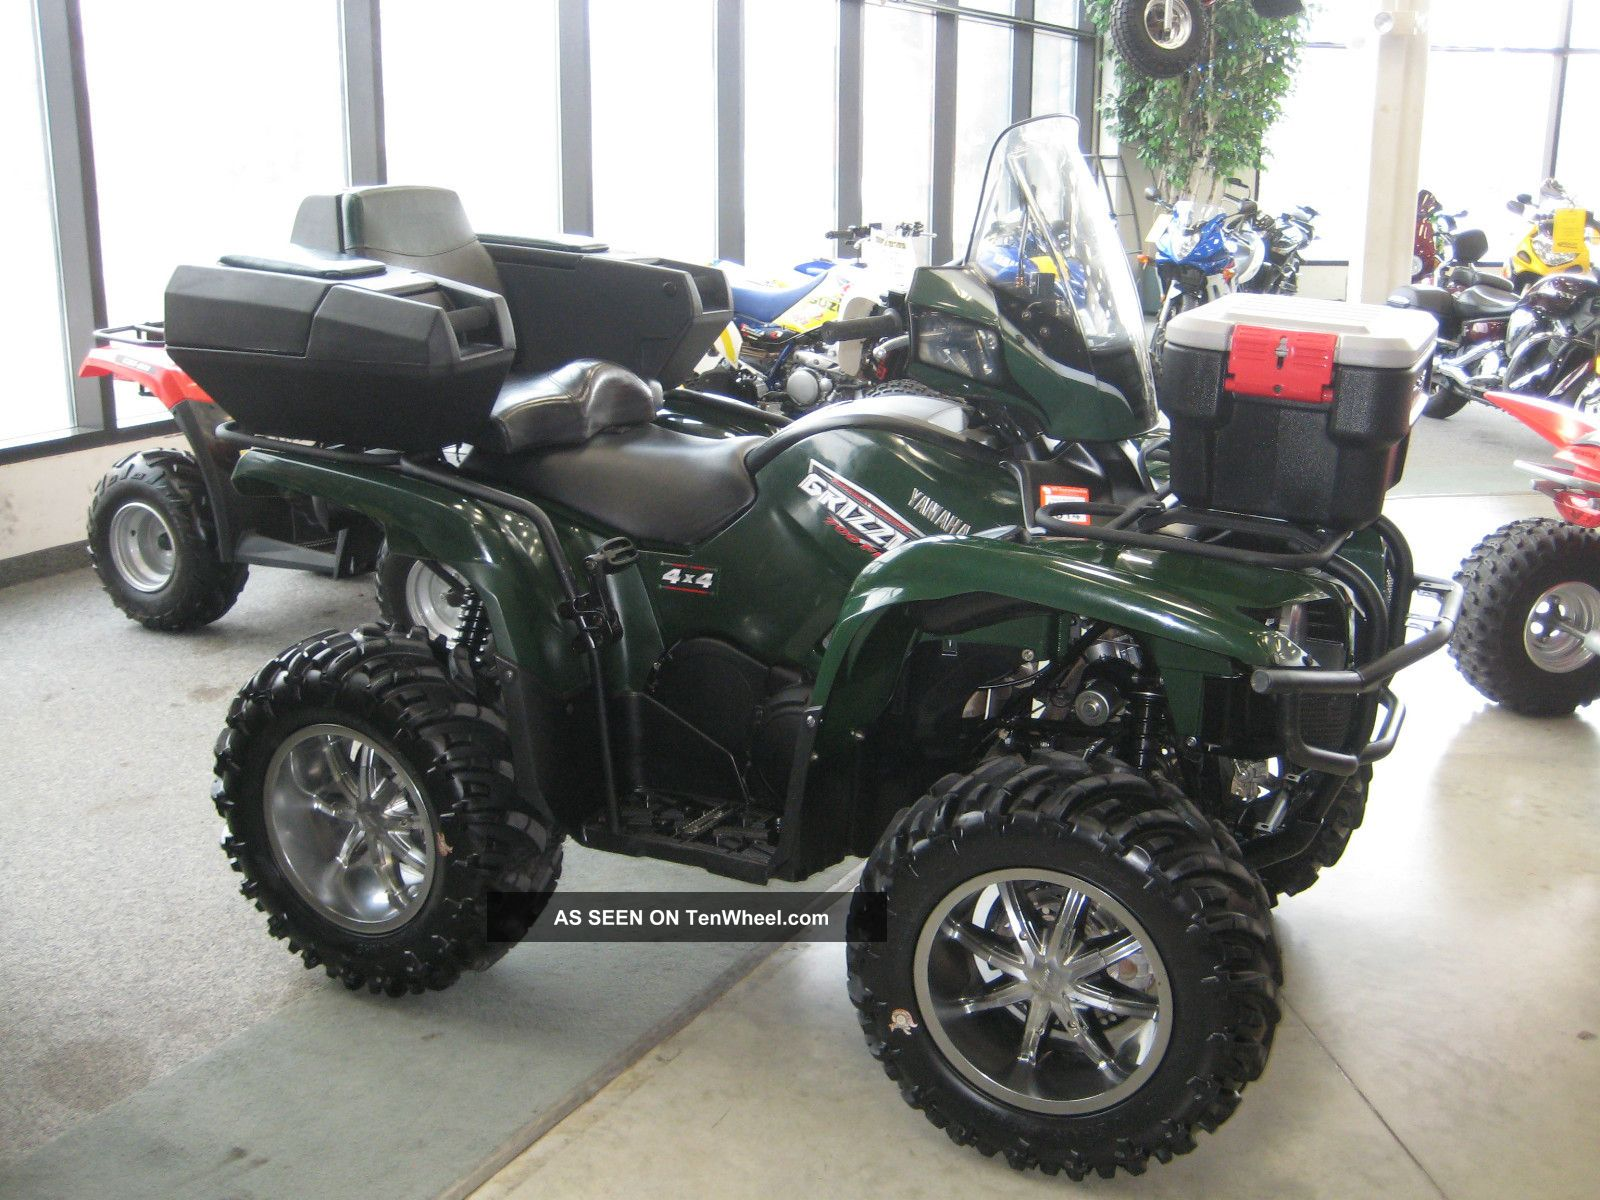 2009 yamaha yfm 700 fi electric power steering grizzly. Black Bedroom Furniture Sets. Home Design Ideas